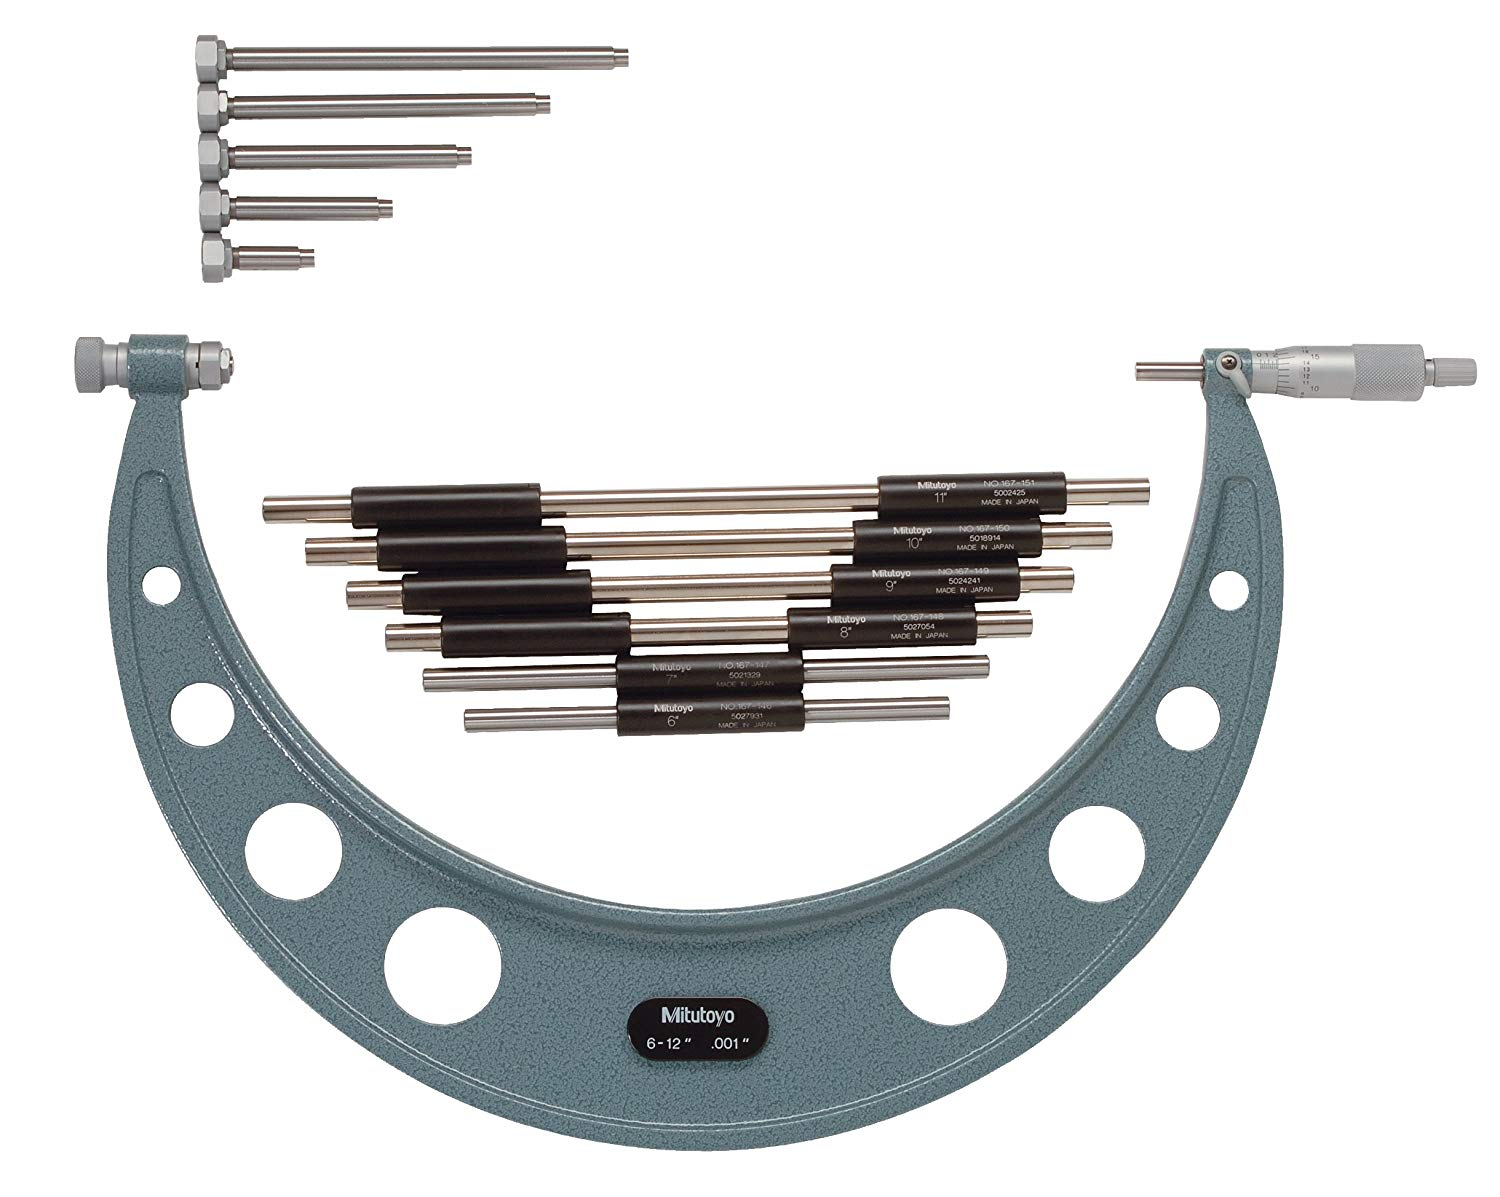 """Carbide Faces 0-6/"""" Outside Micrometer Caliper Set with 6 Interchangeable Anvils"""